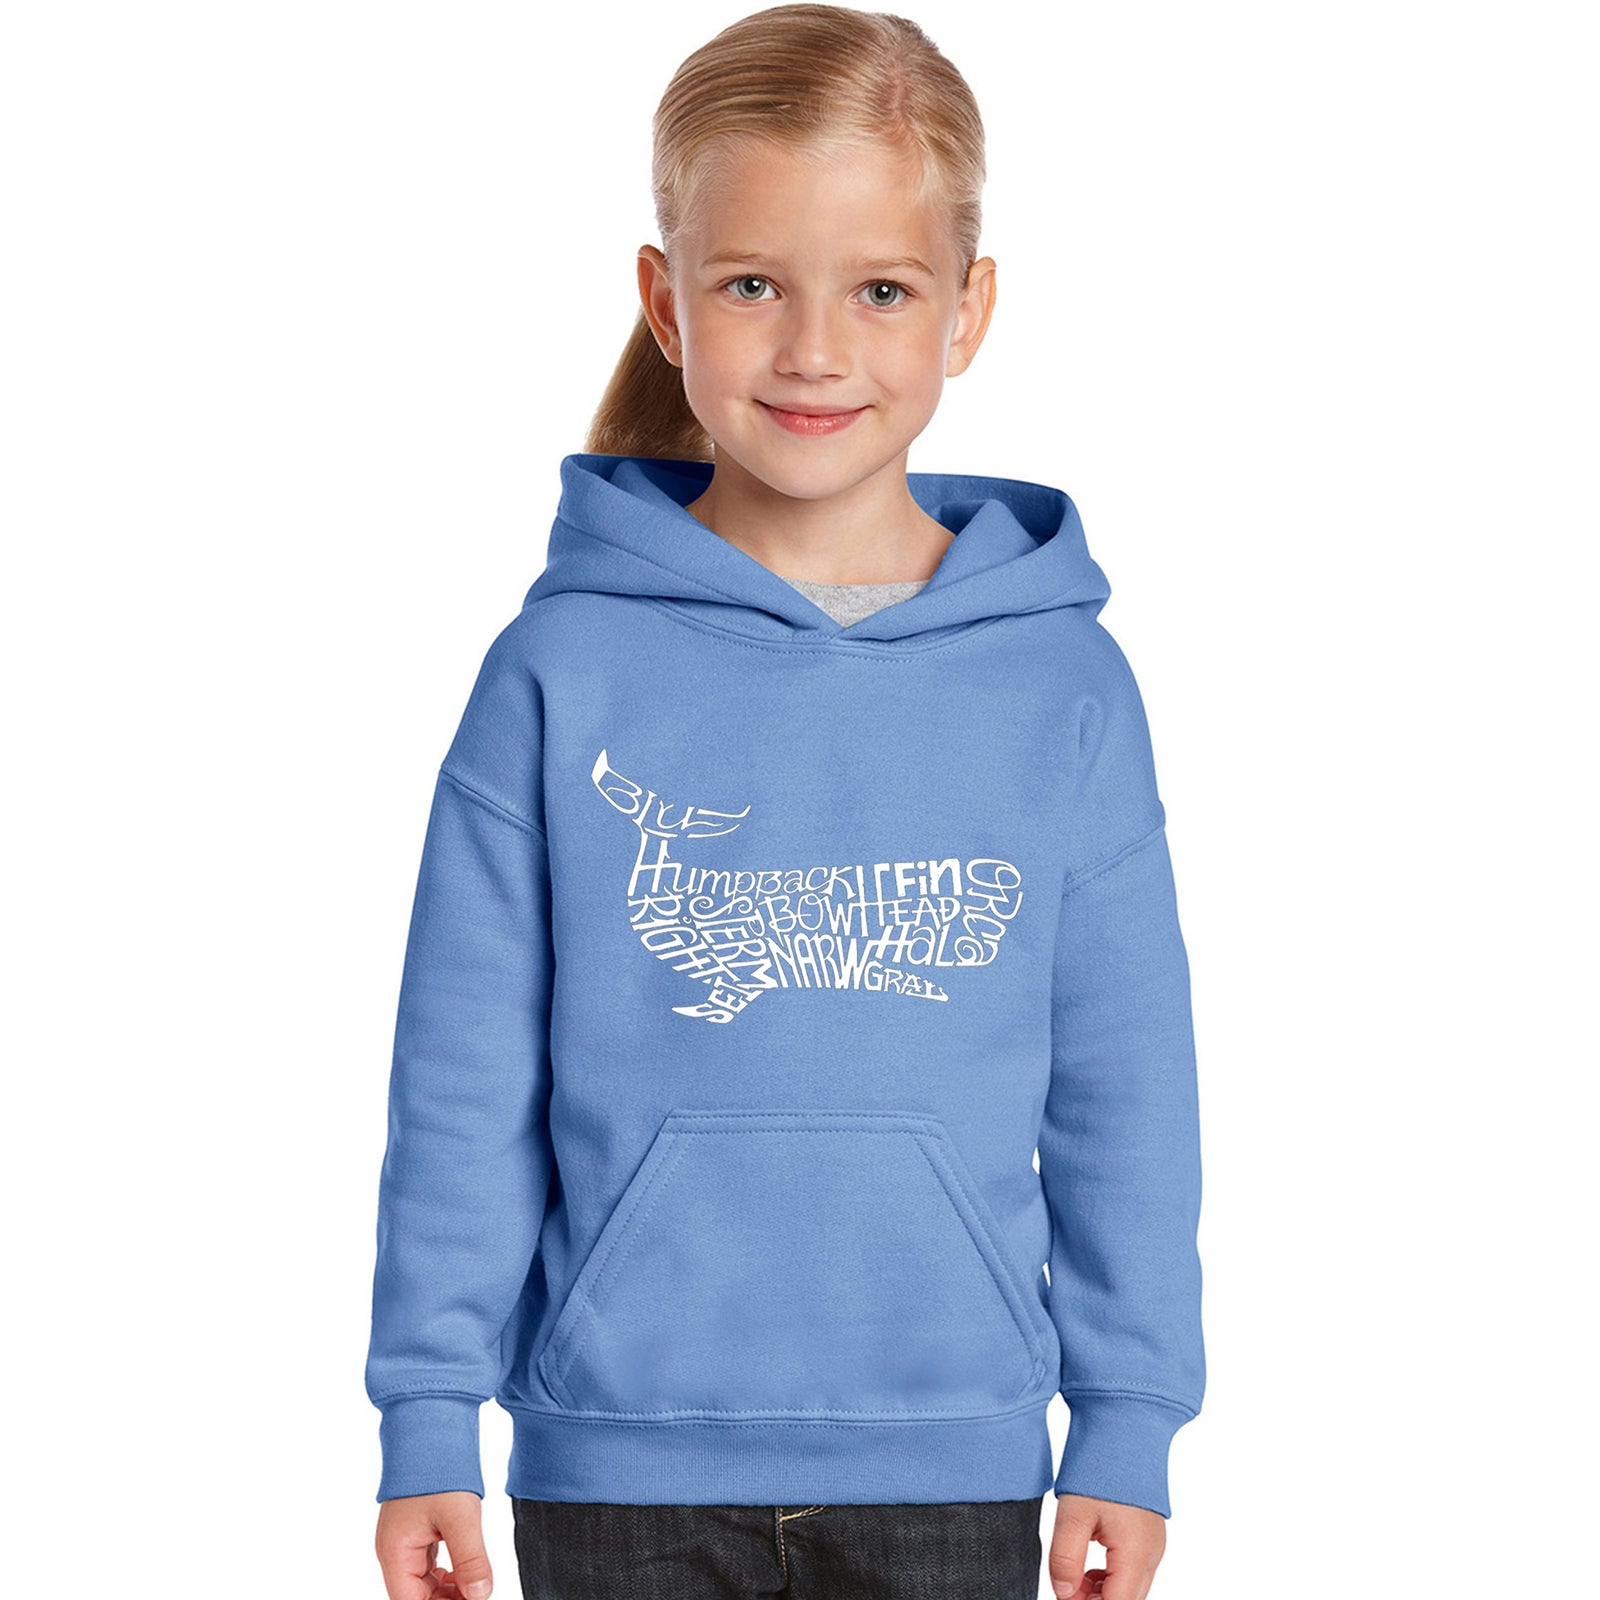 Girl's Word Art Hooded Sweatshirt - Humpbk